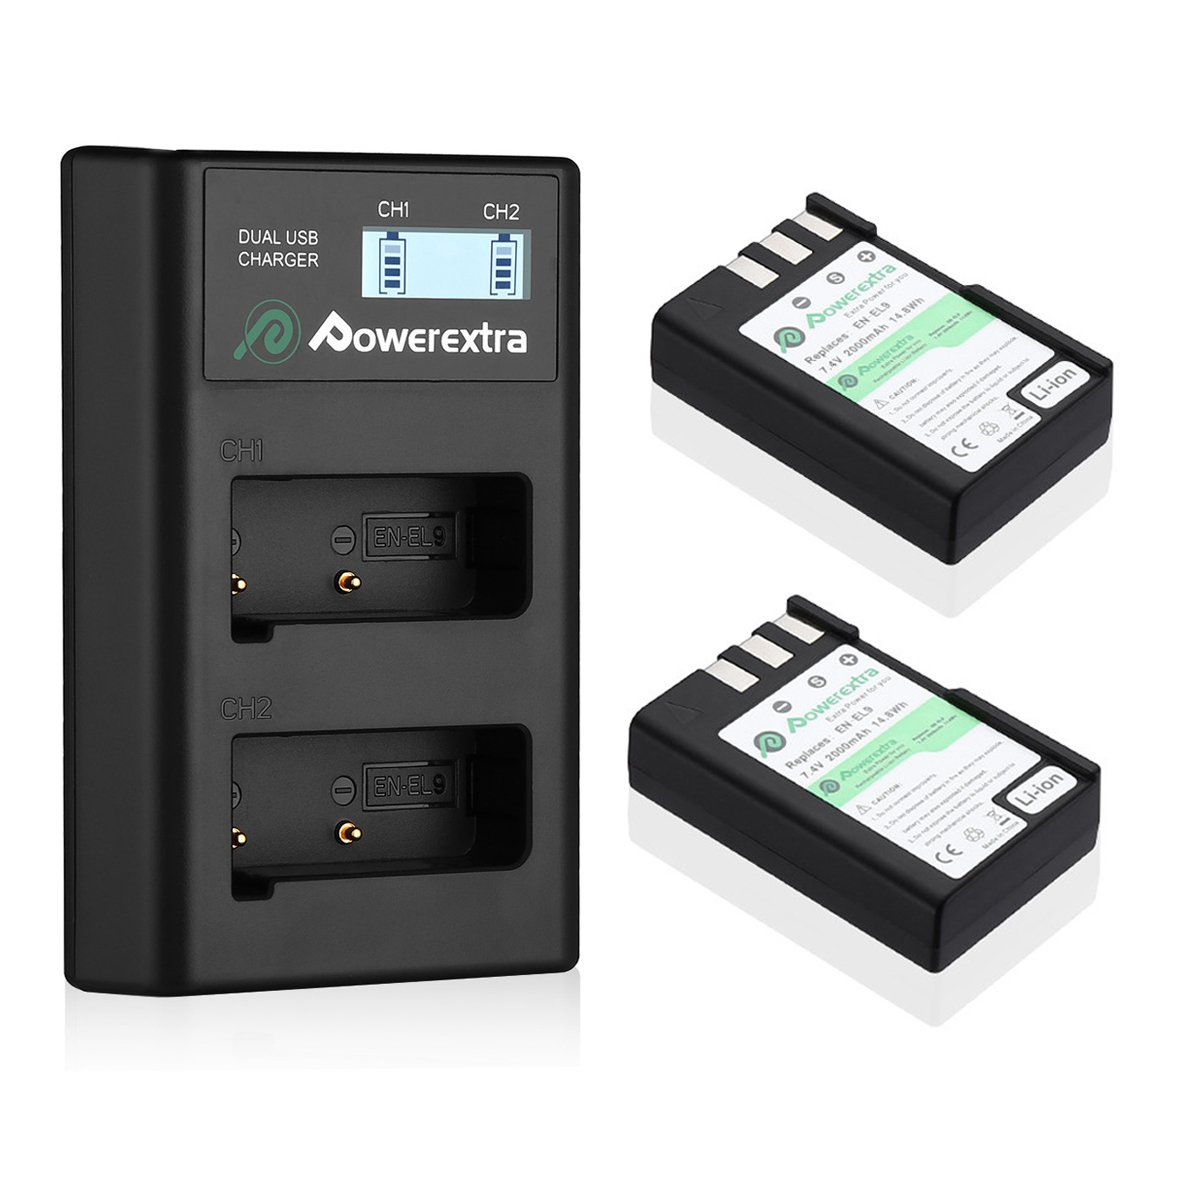 Powerextra 2 Pack EN-EL9 Replacement Battery & Dual LCD Charger Compatible with Nikon D40 D40x D60 D3000 D5000 Cameras